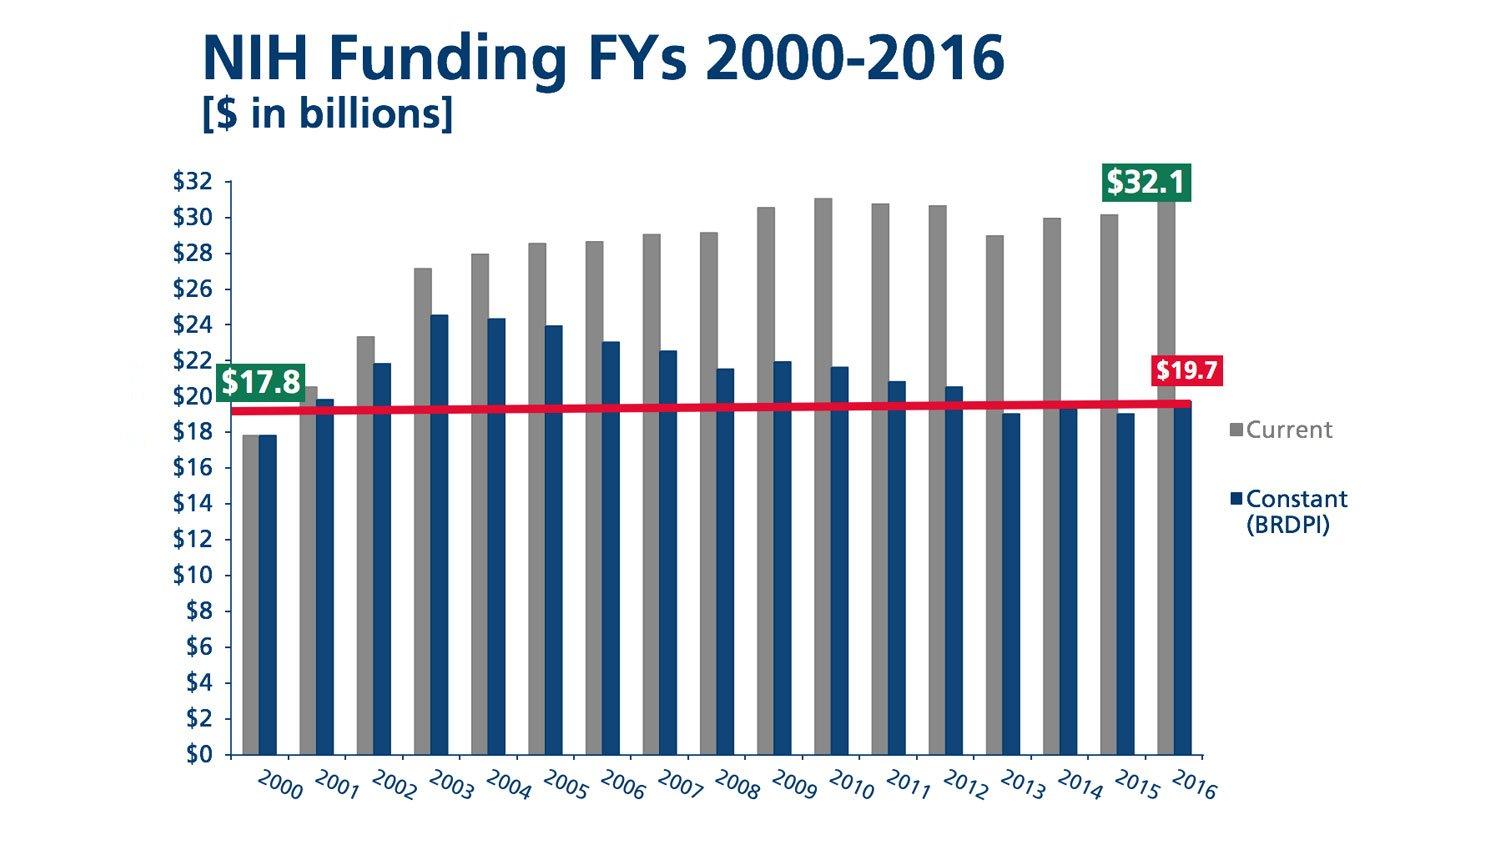 The 2014 level of funding is similar in purchasing power to levles from 2000 to 2001. The NIH budget, while increasing in dollar amount, is actually shrinking in power.